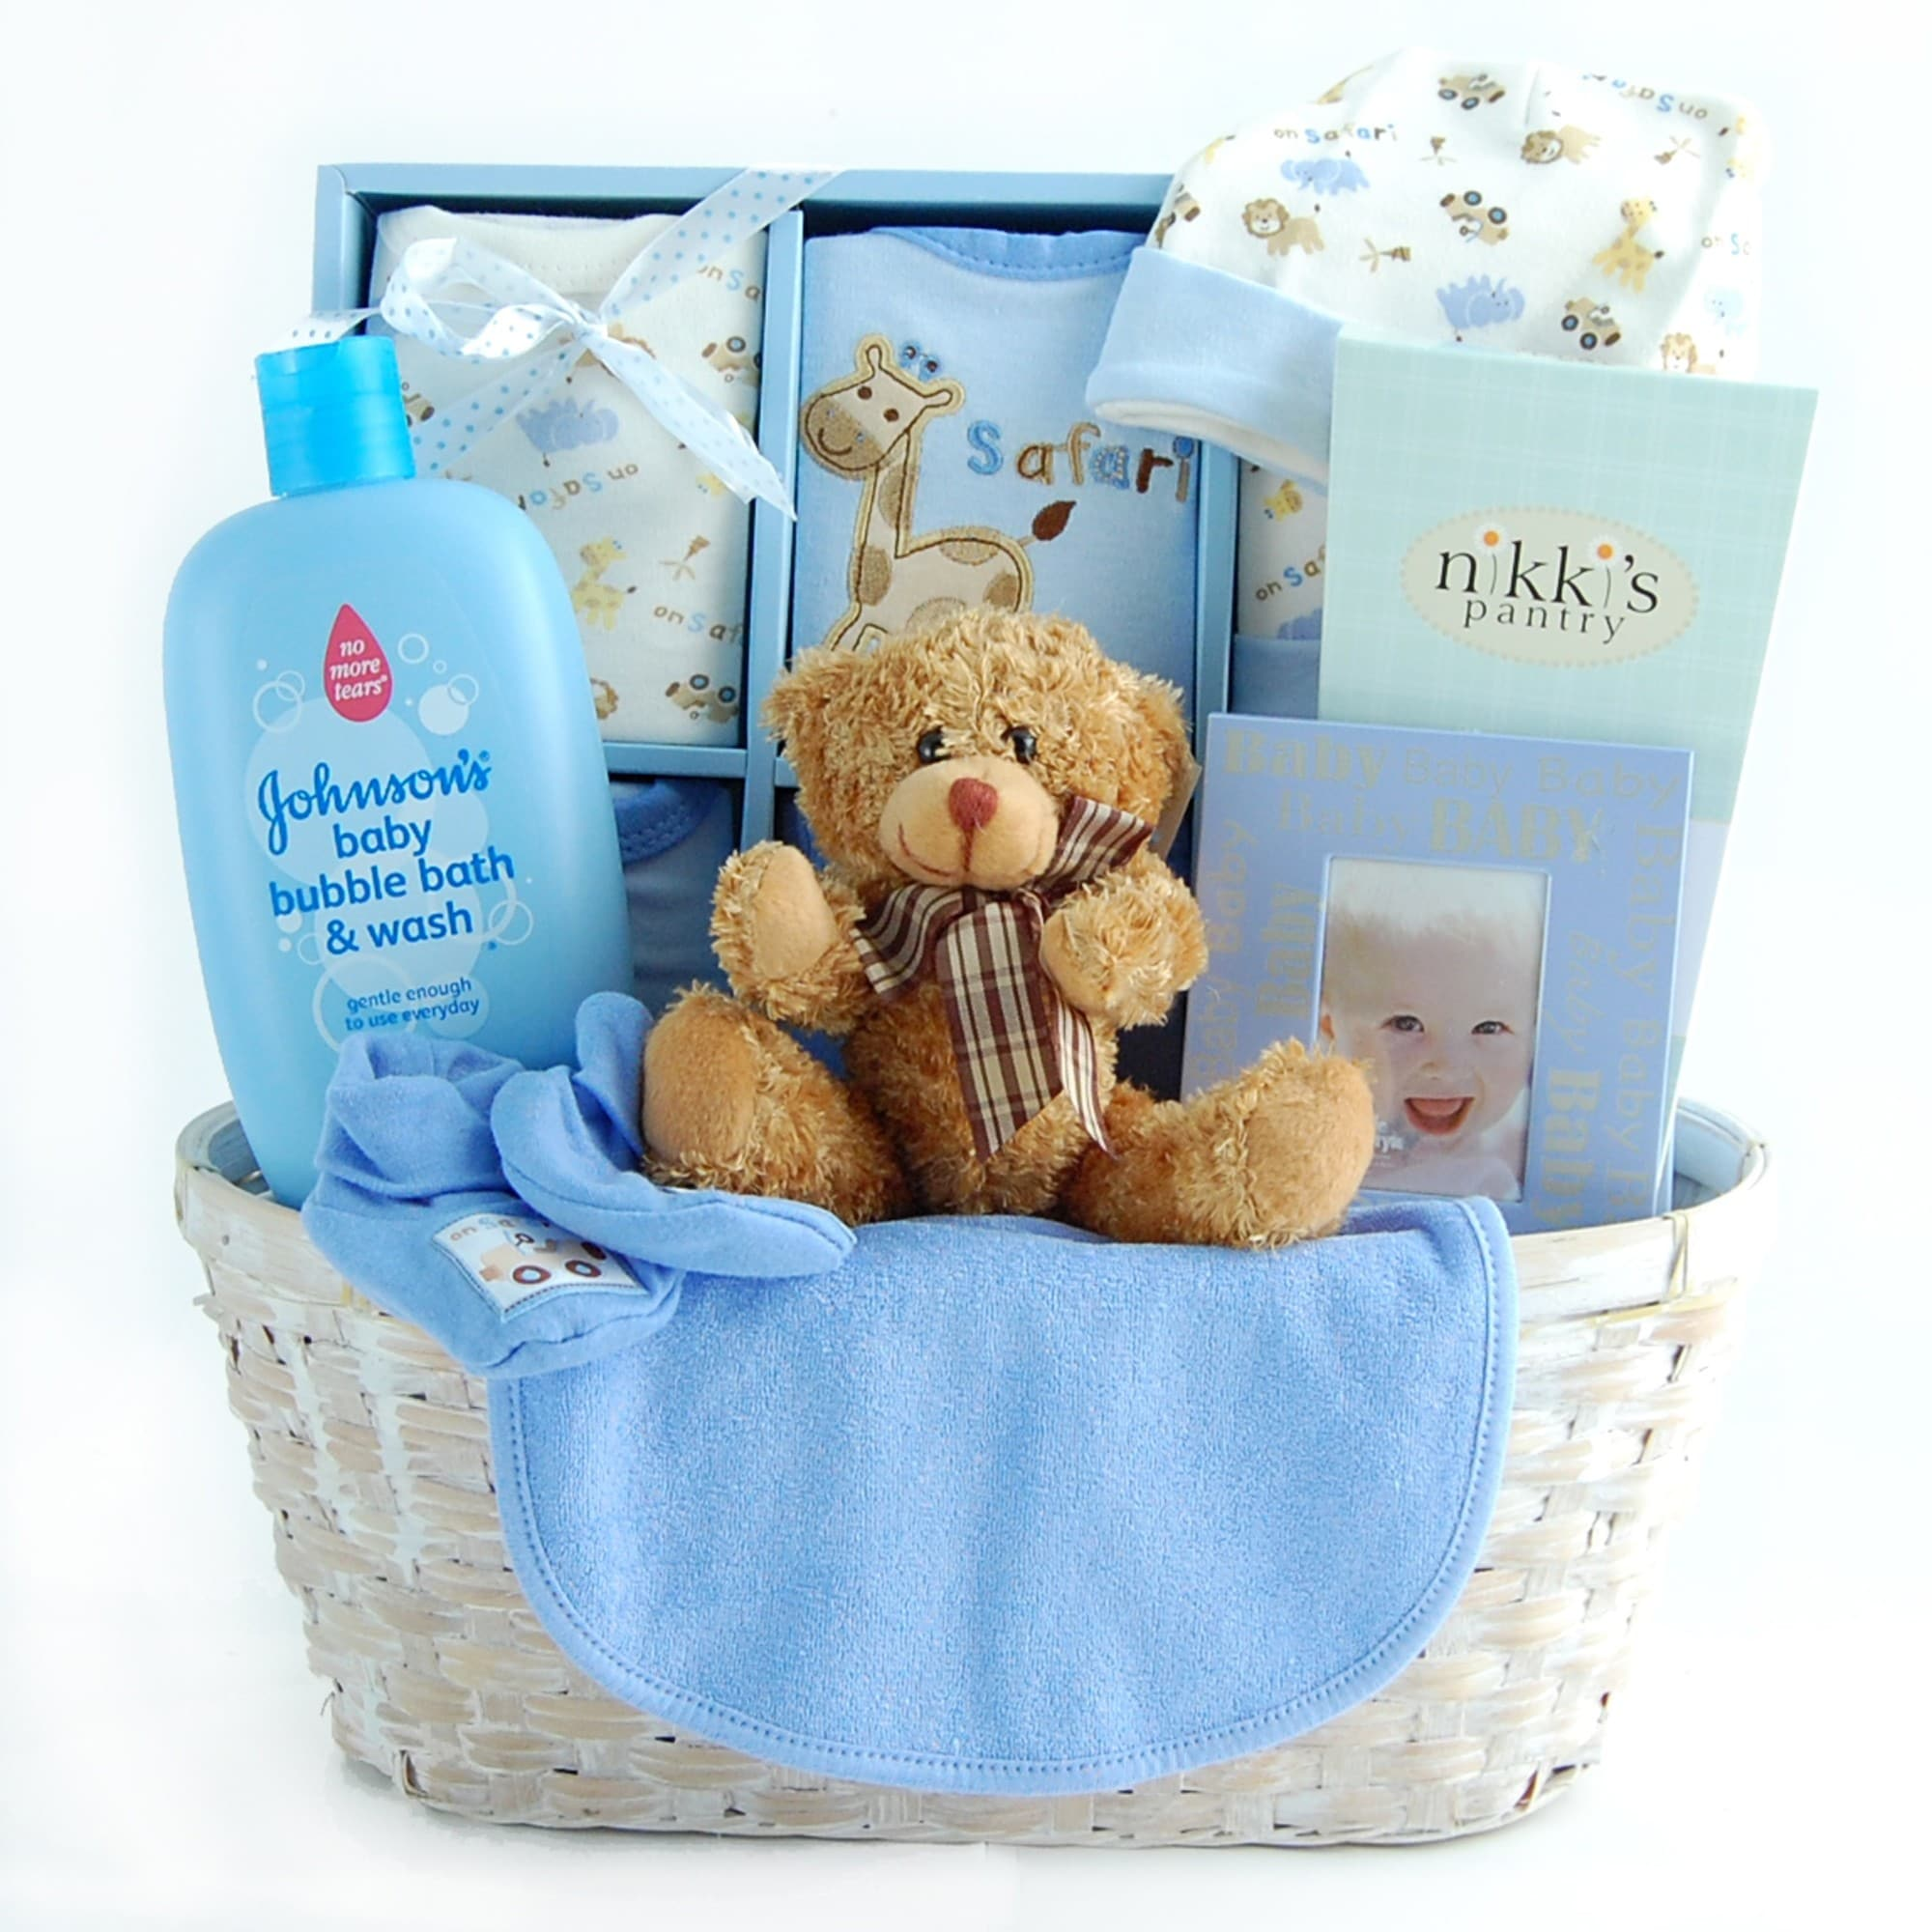 644bce3f577b Shop New Arrival Baby Boy Gift Basket - Free Shipping Today - Overstock -  2453911